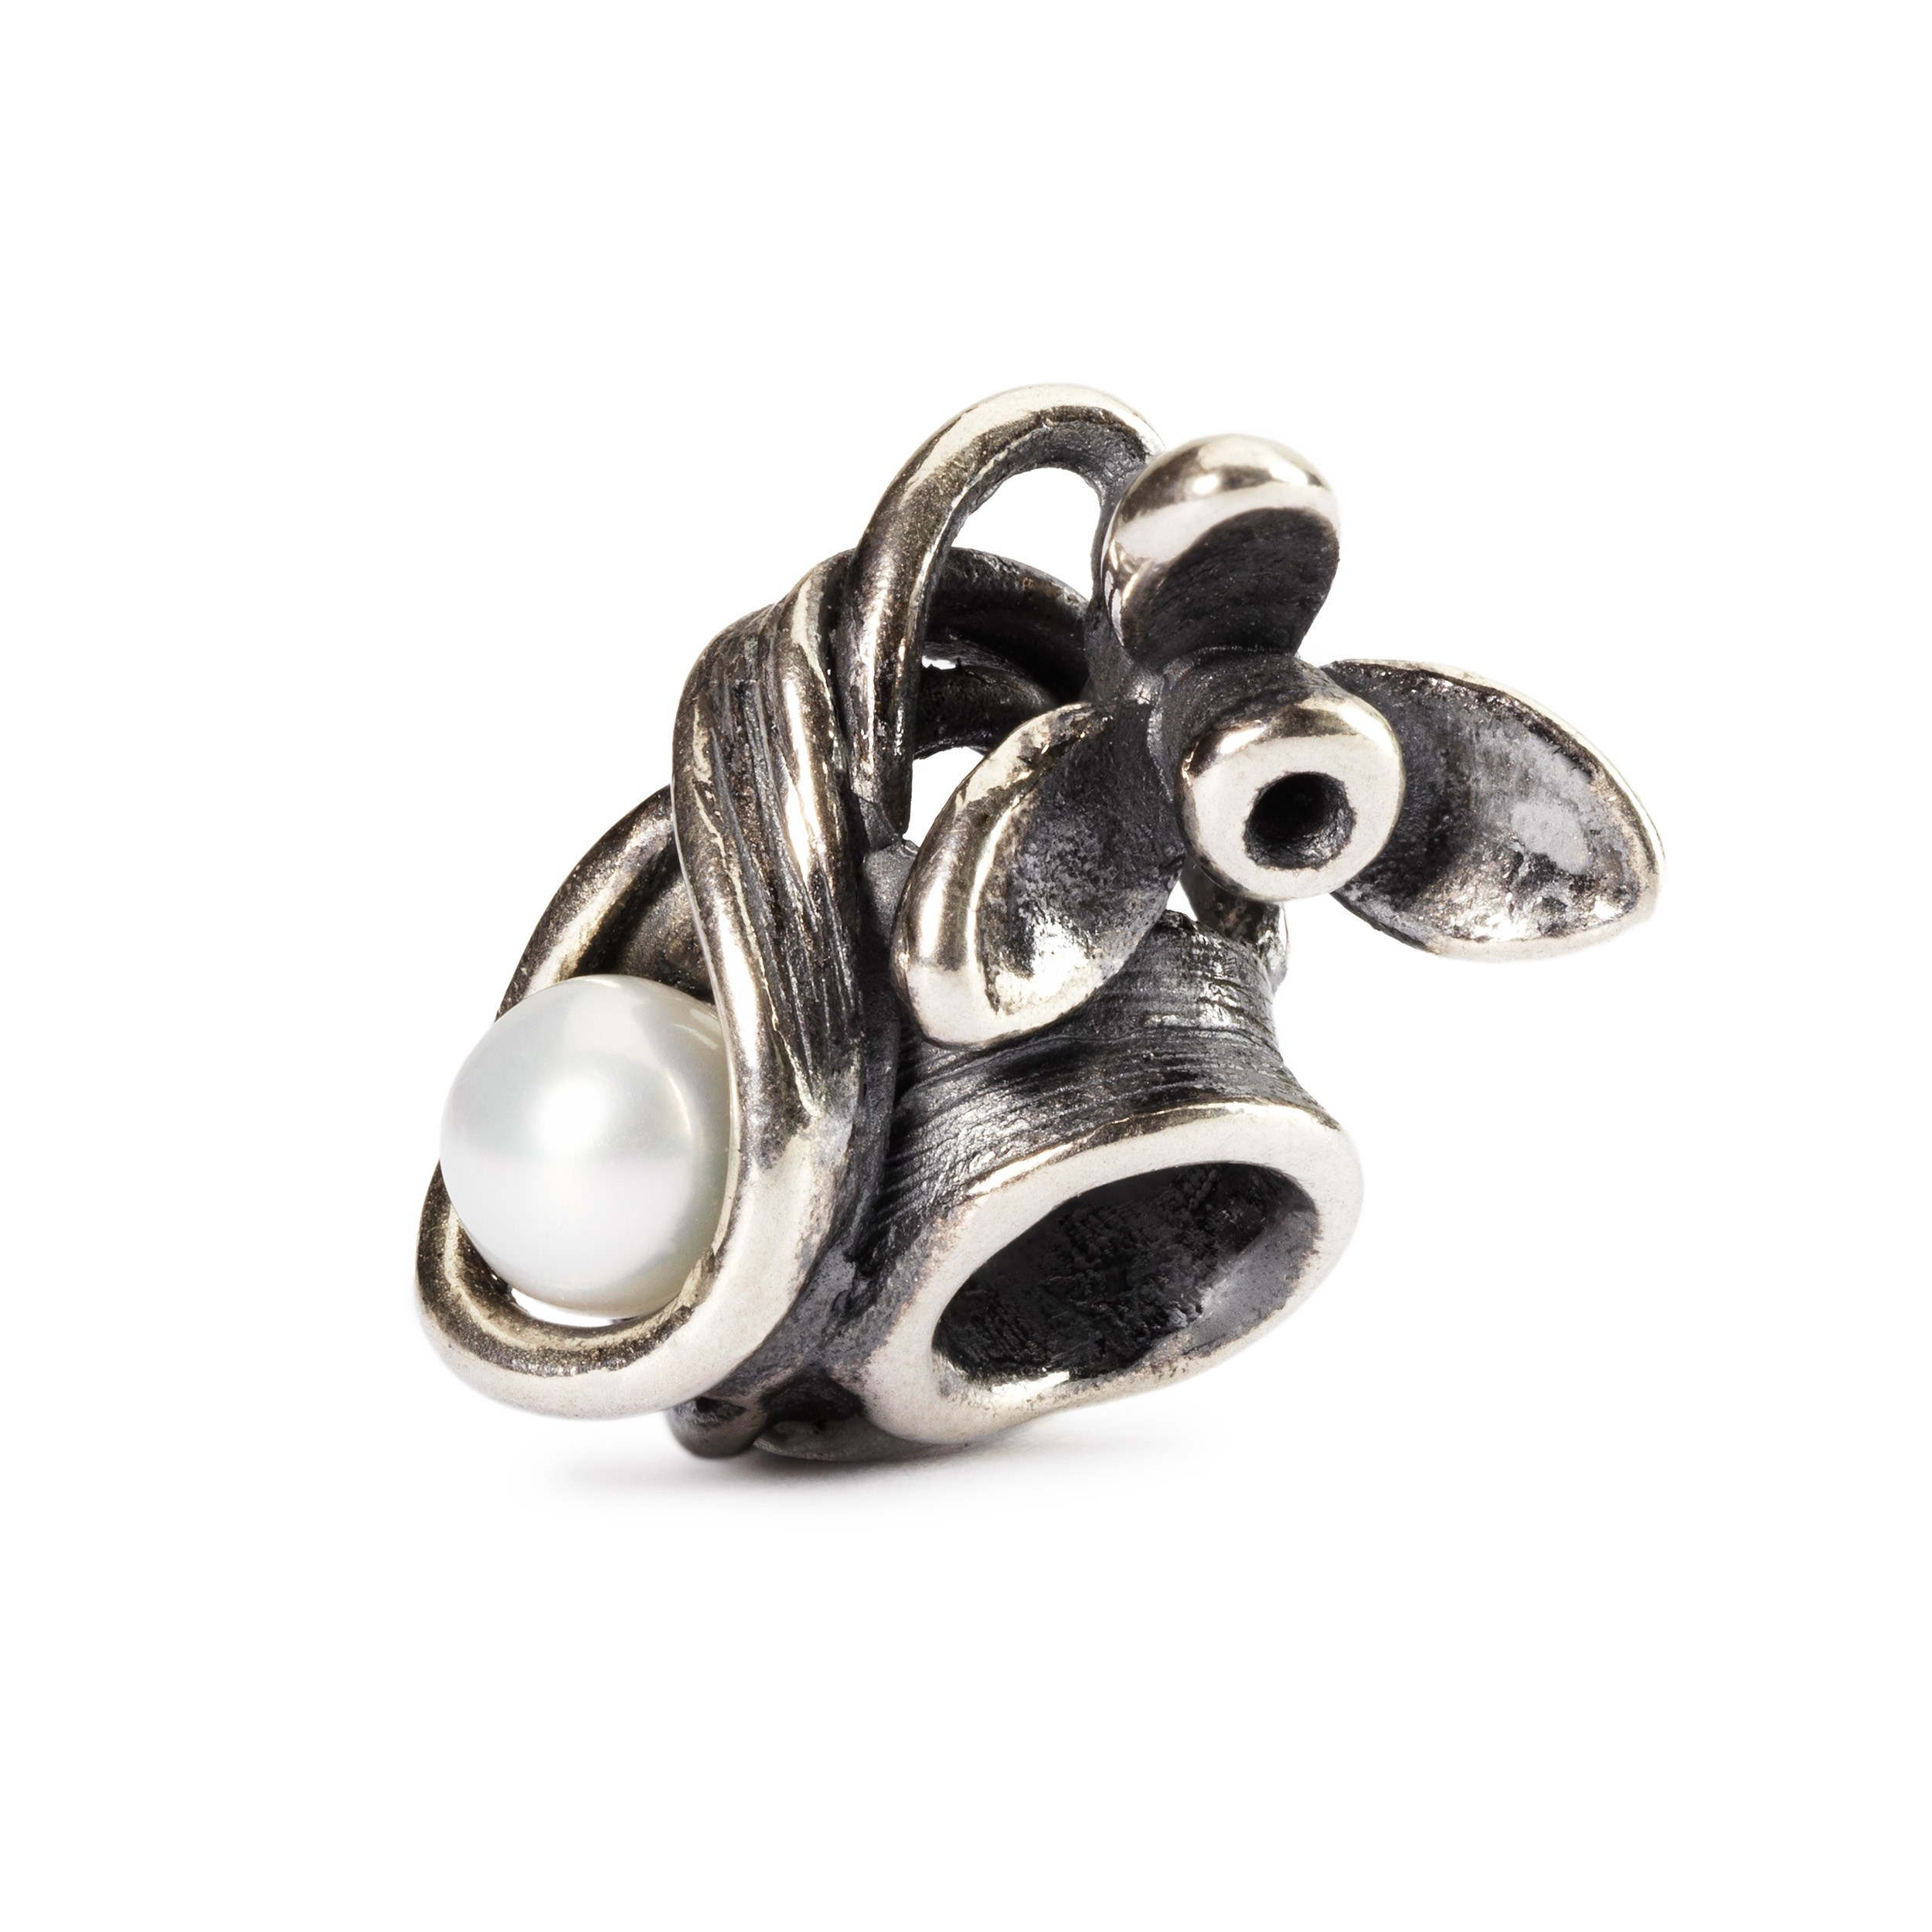 AUTHENTIC TROLLBEADS BOW SPACER TAGBE-30131 STOP FIOCCO